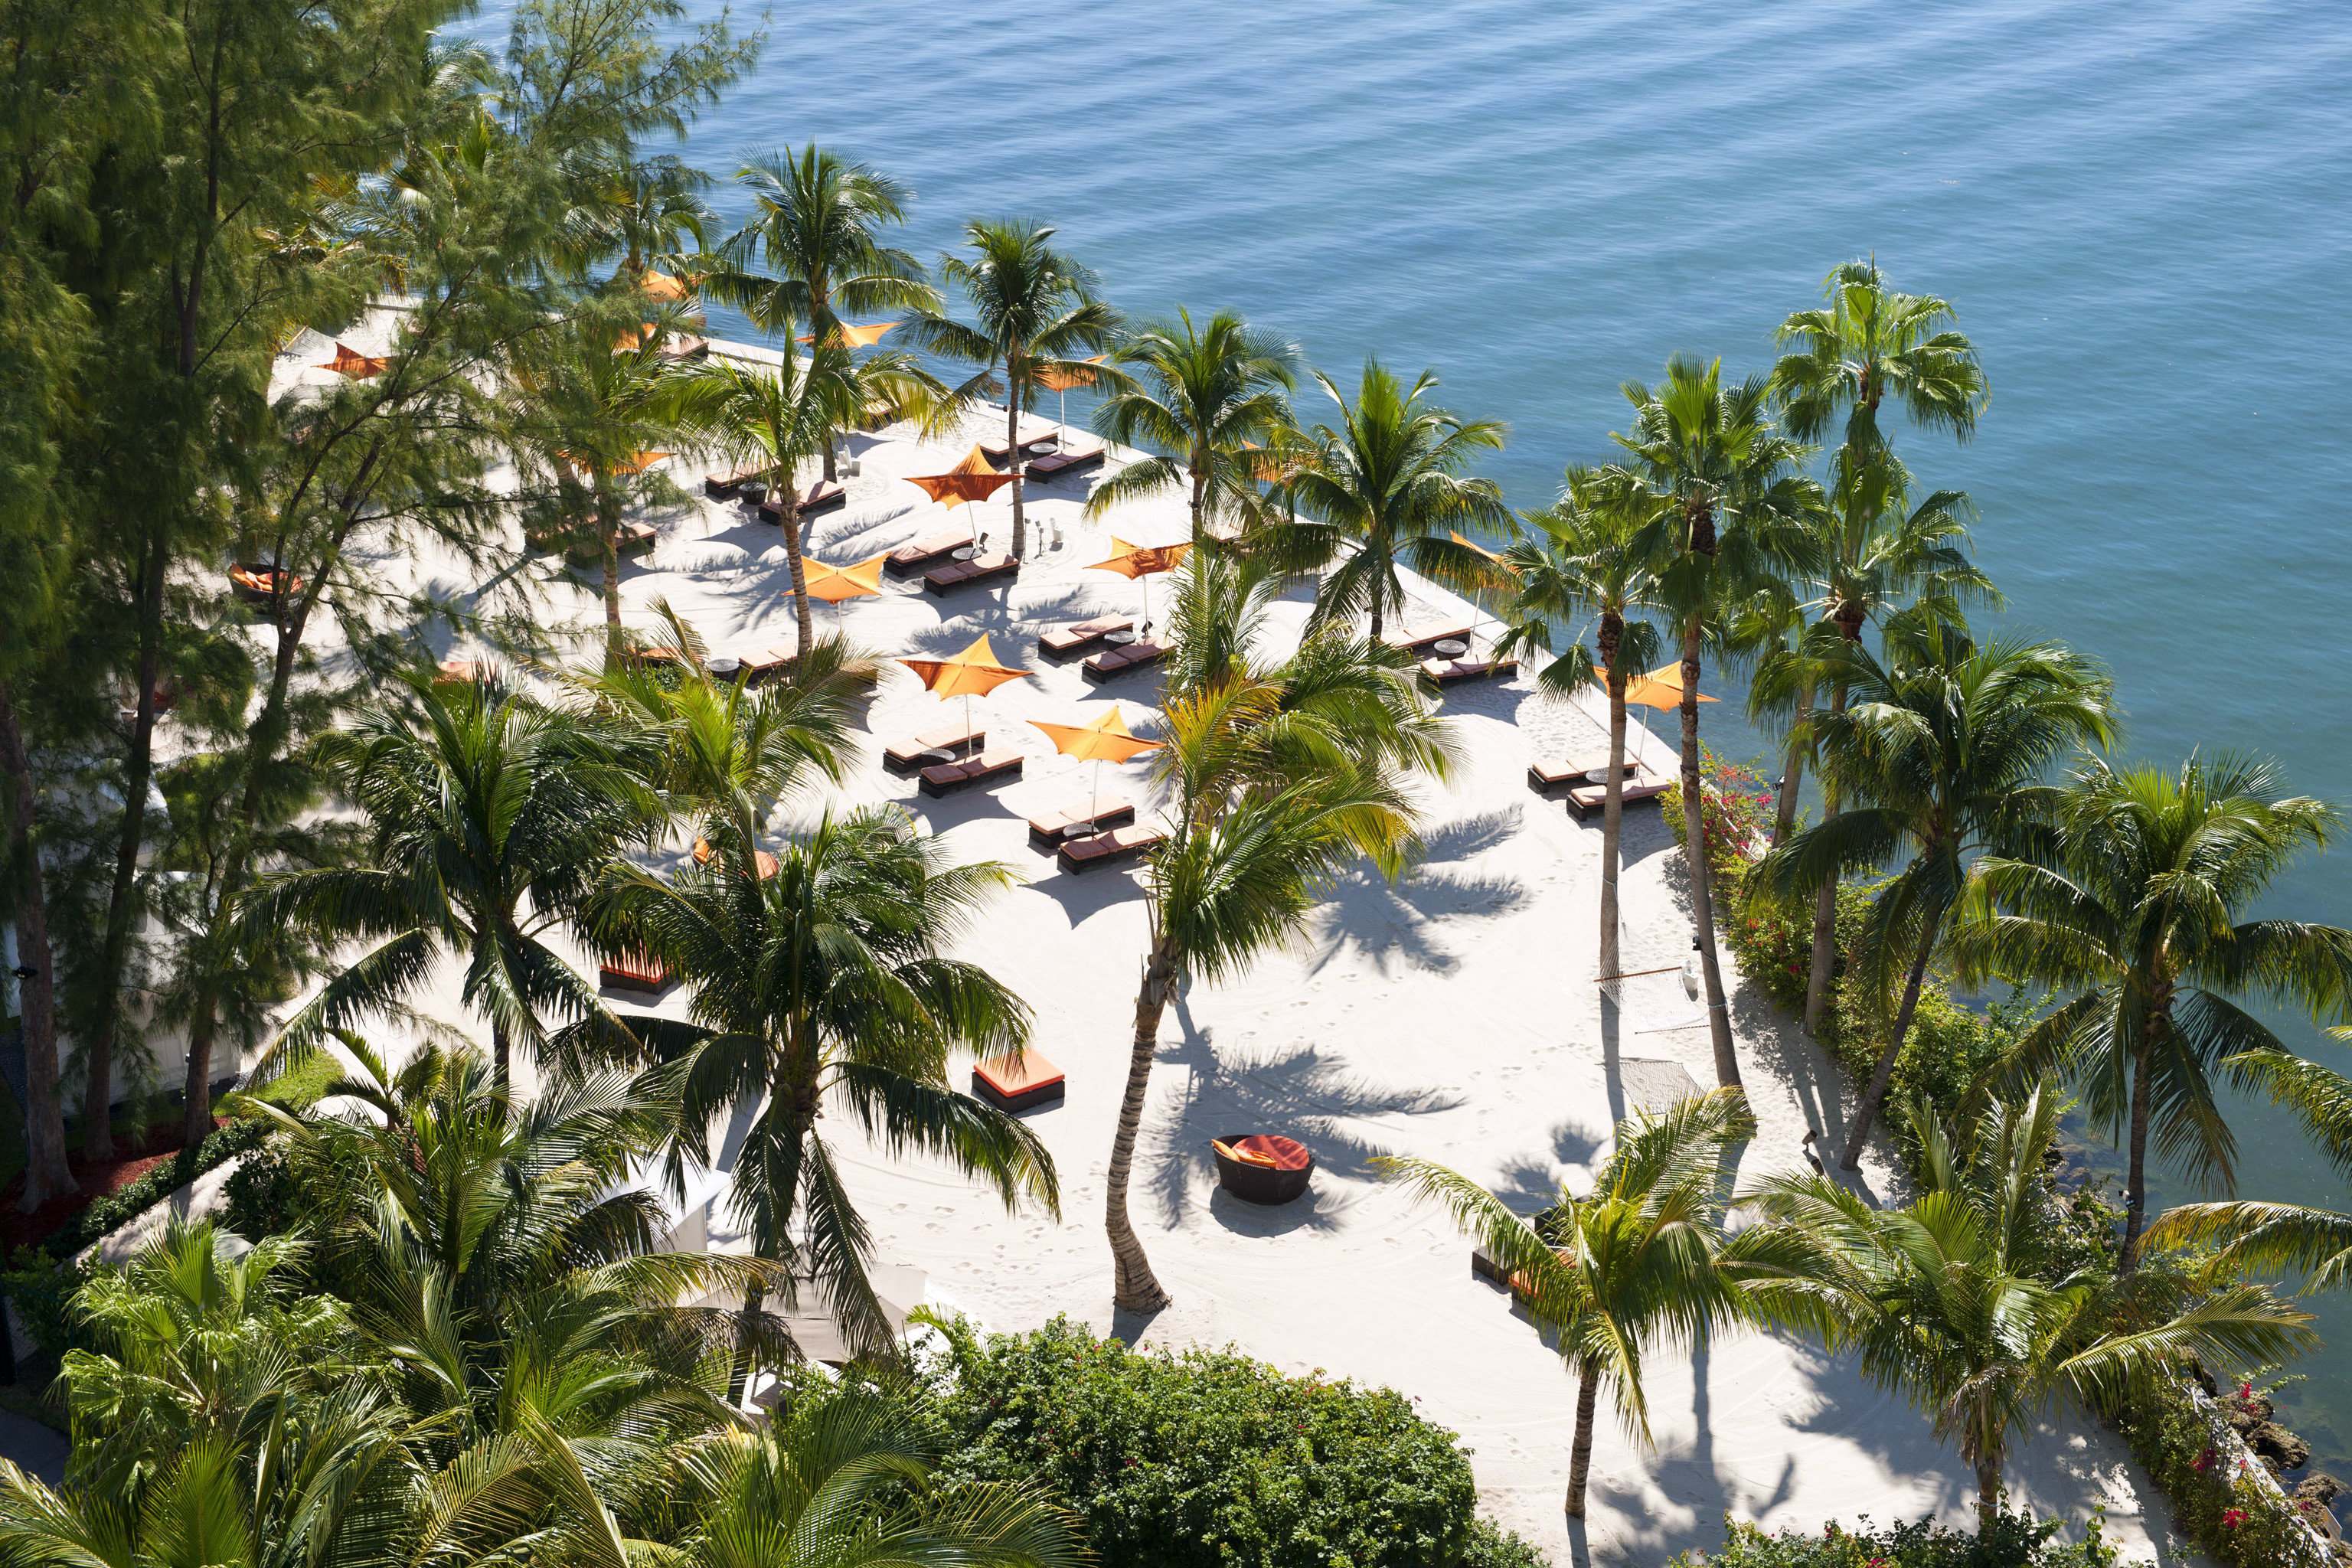 Beach City Grounds Hotels Lounge Luxury Miami Miami Beach Ocean Waterfront tree palm flora plant arecales conifer tropics Nature Coast Resort Jungle flower Sea lined